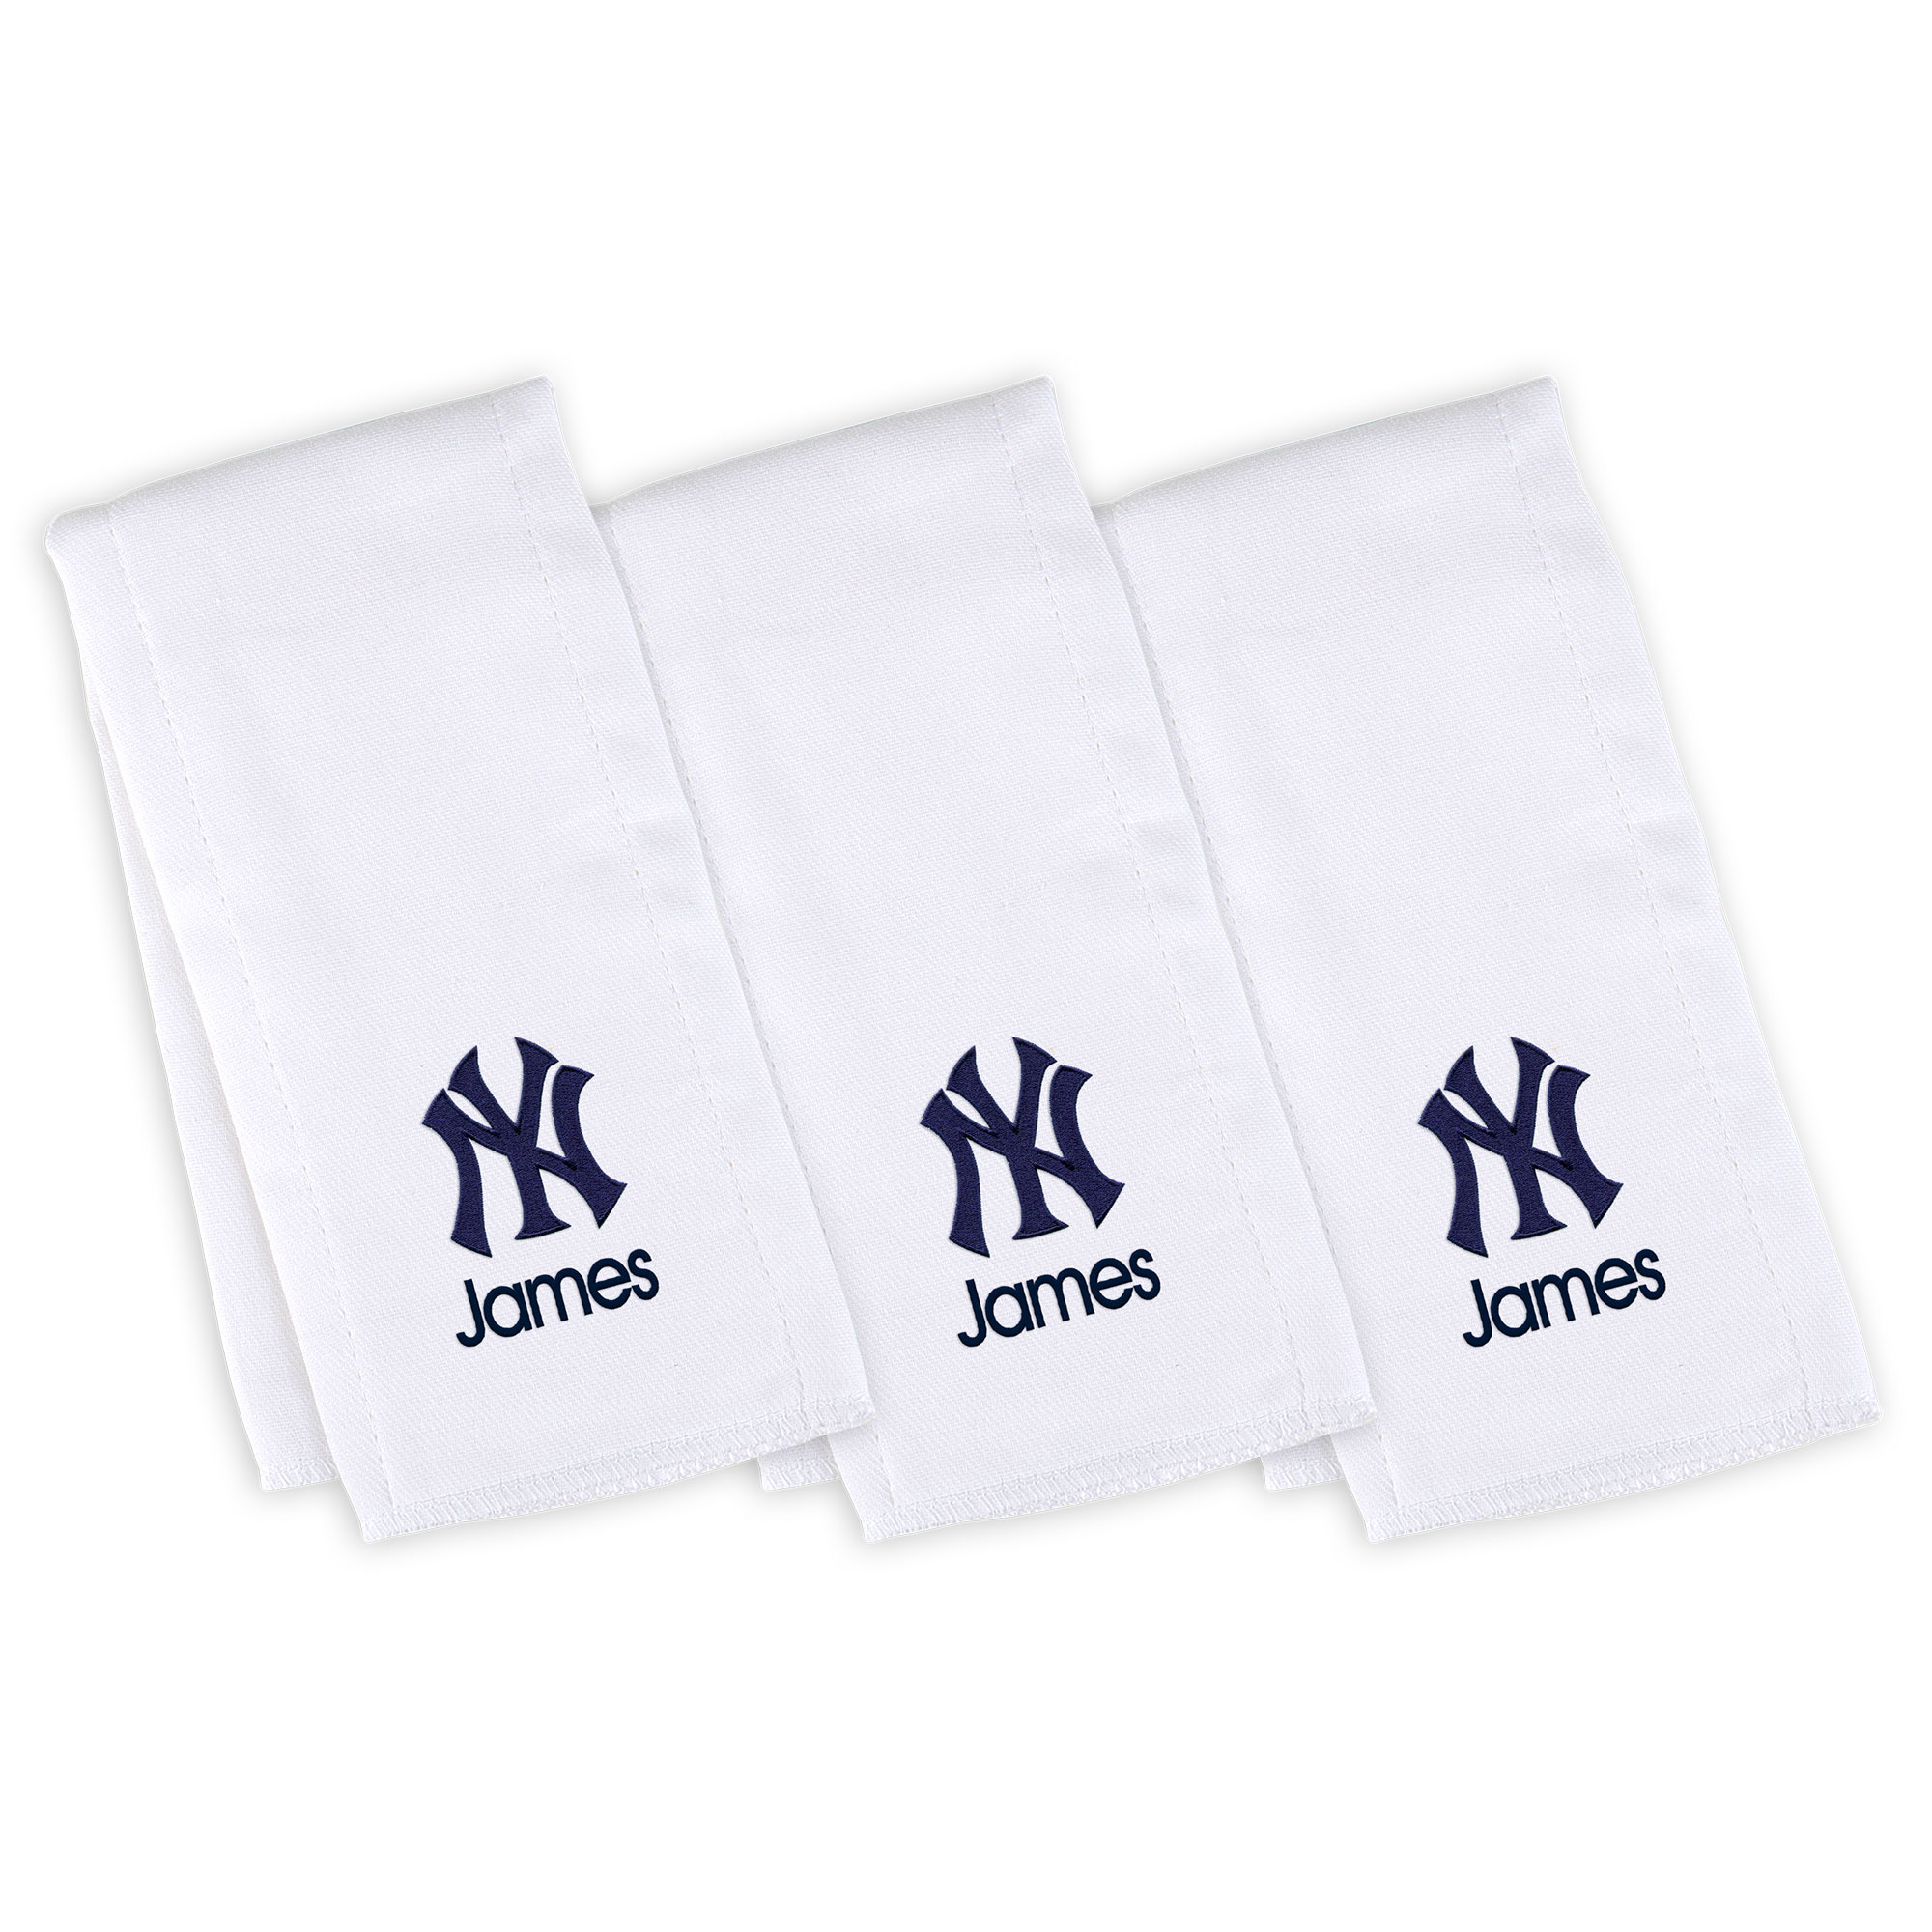 New York Yankees Infant Personalized Burp Cloth 3-Pack - White